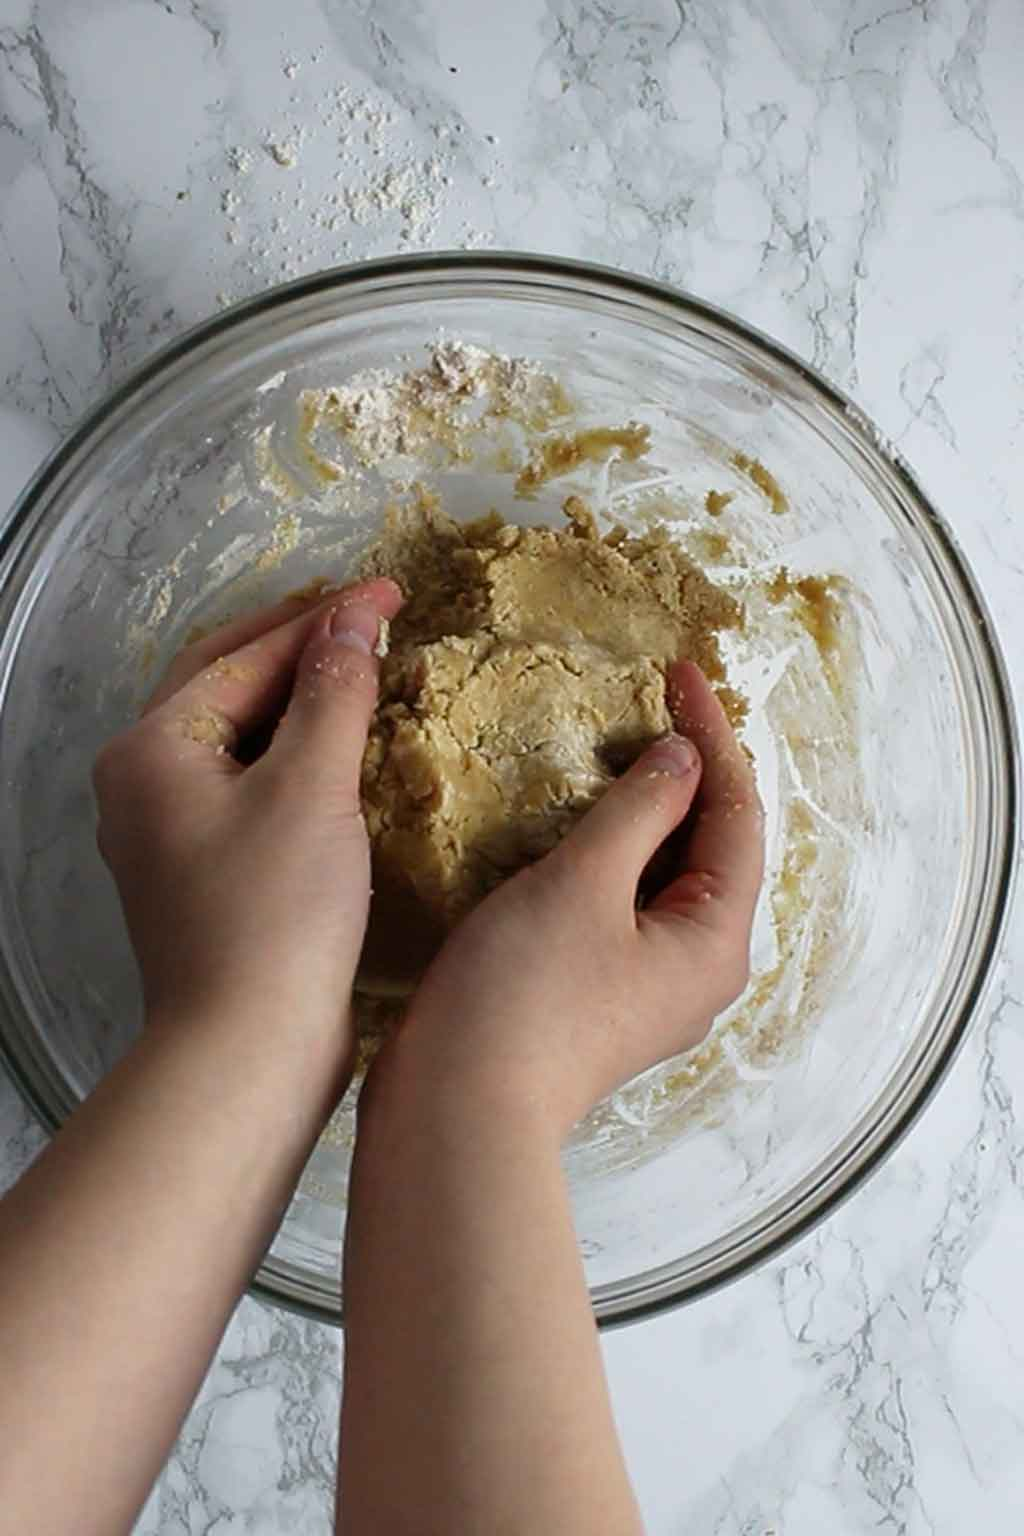 two hands holding a large ball of cookie dough in a bowl